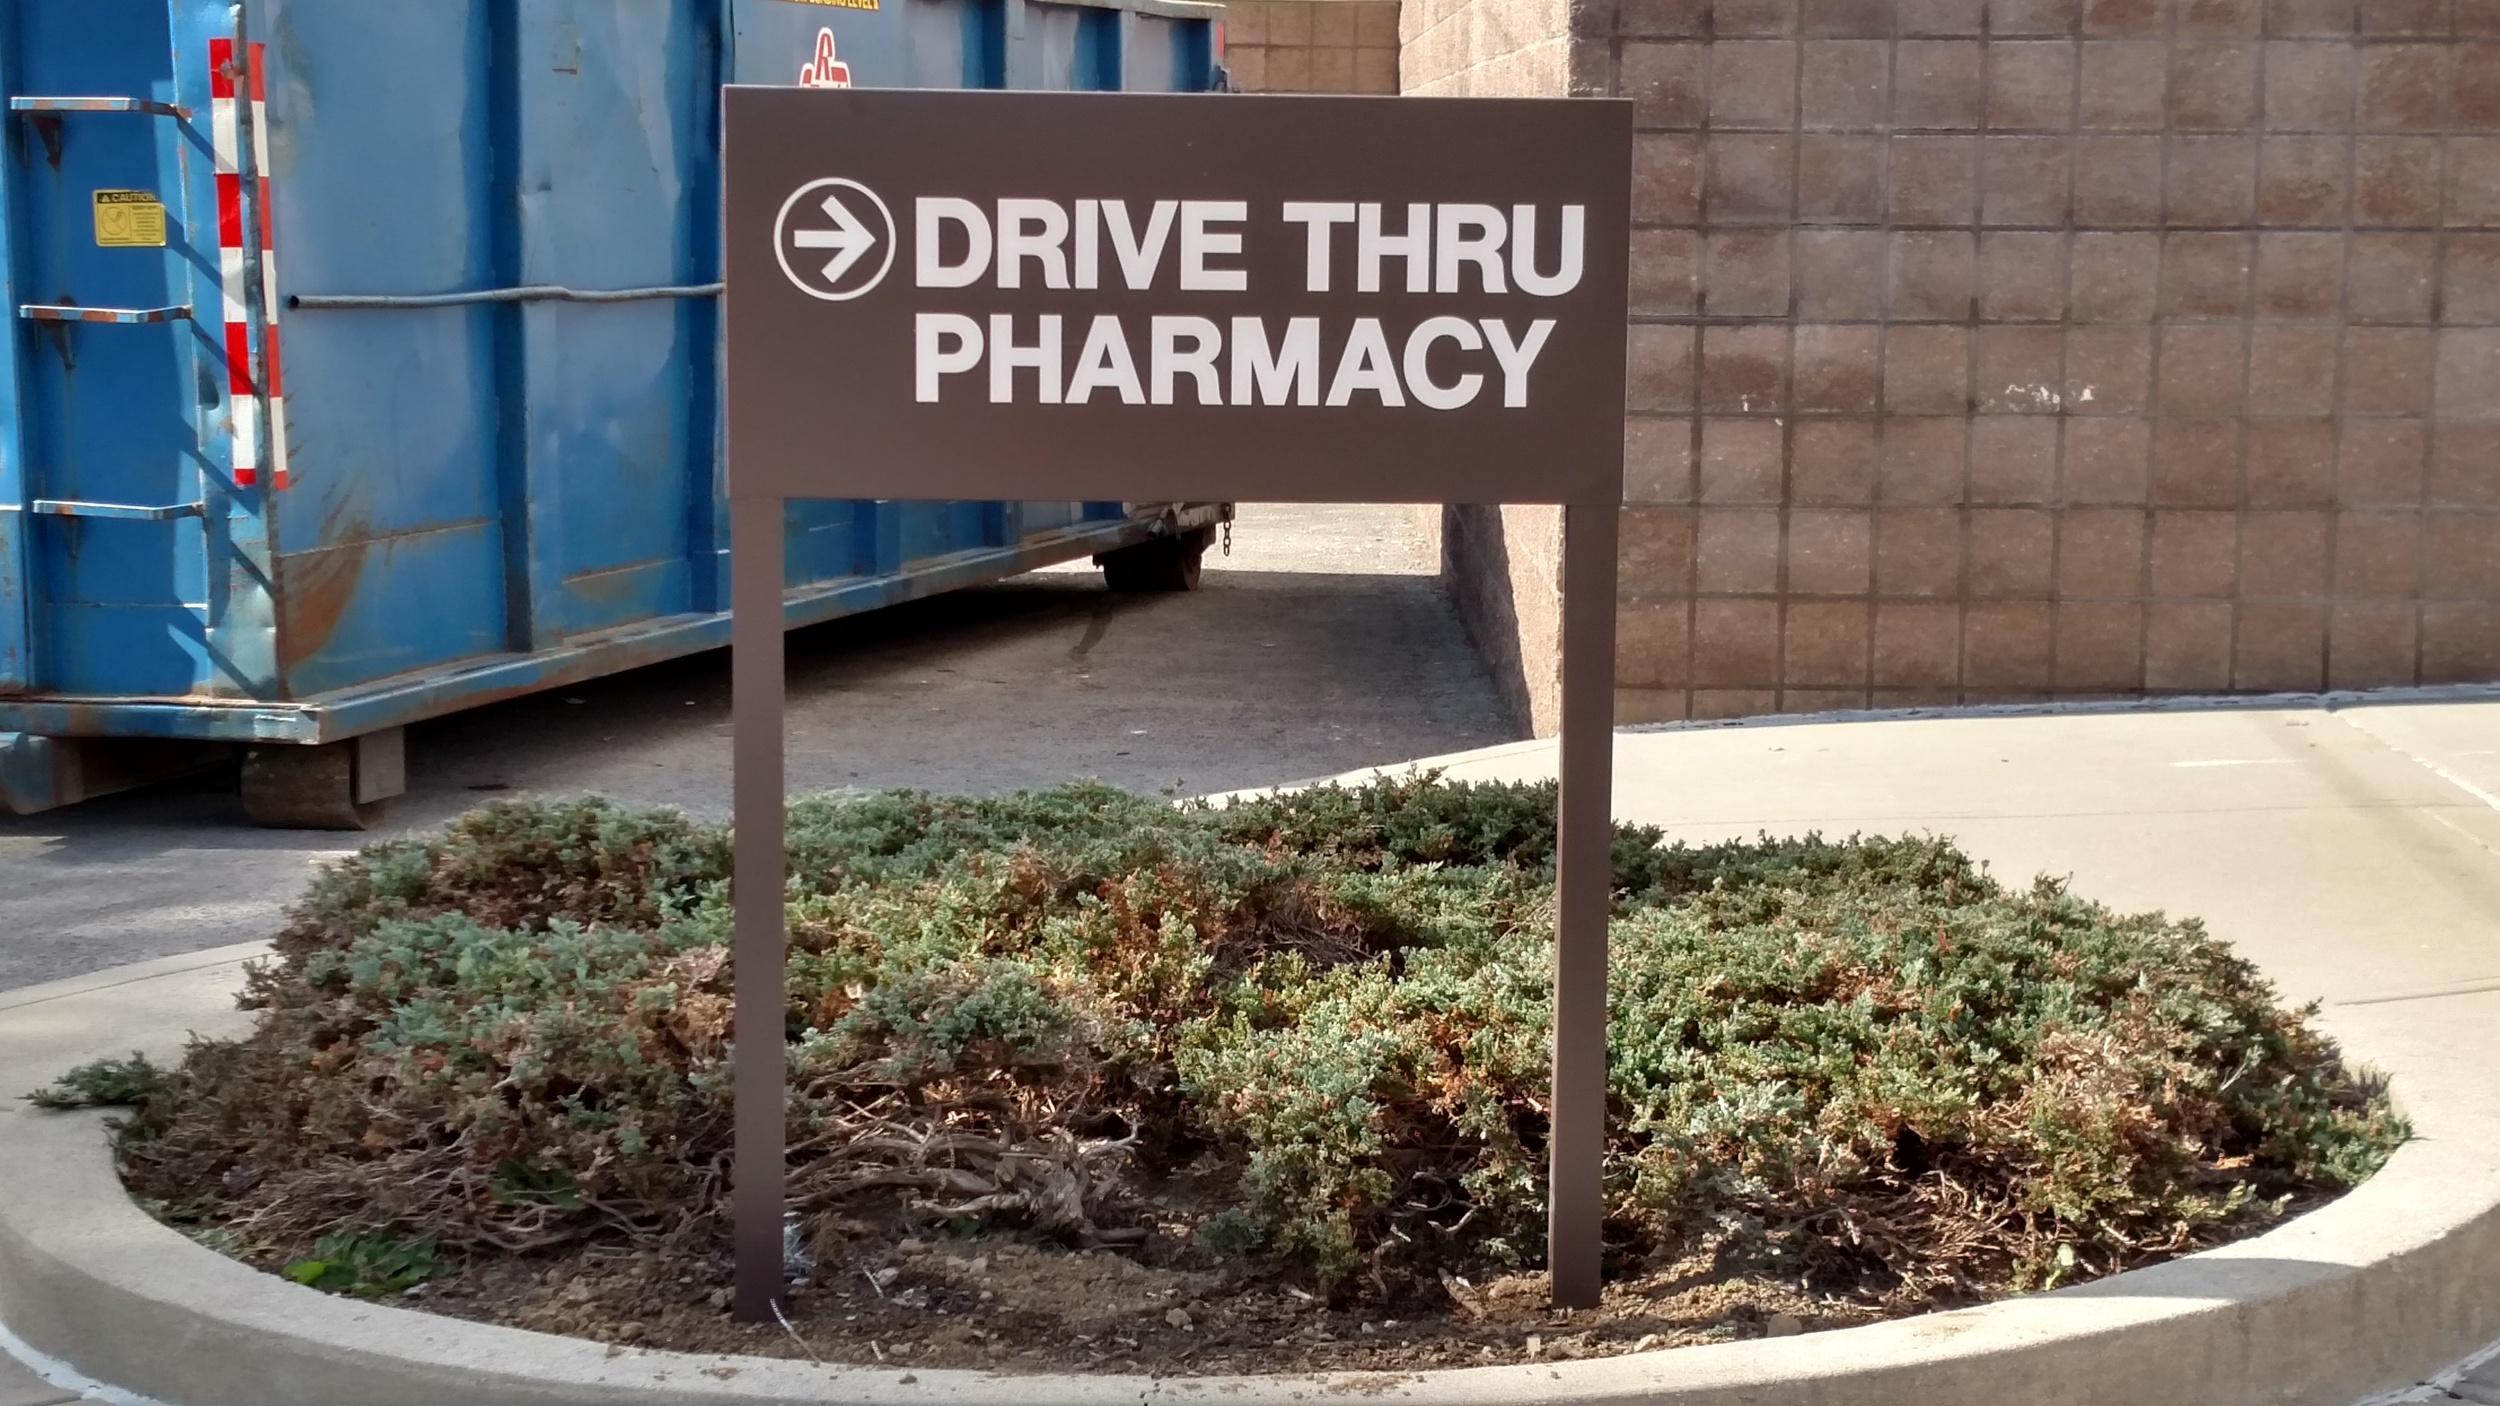 Drive Thru Pharmacy